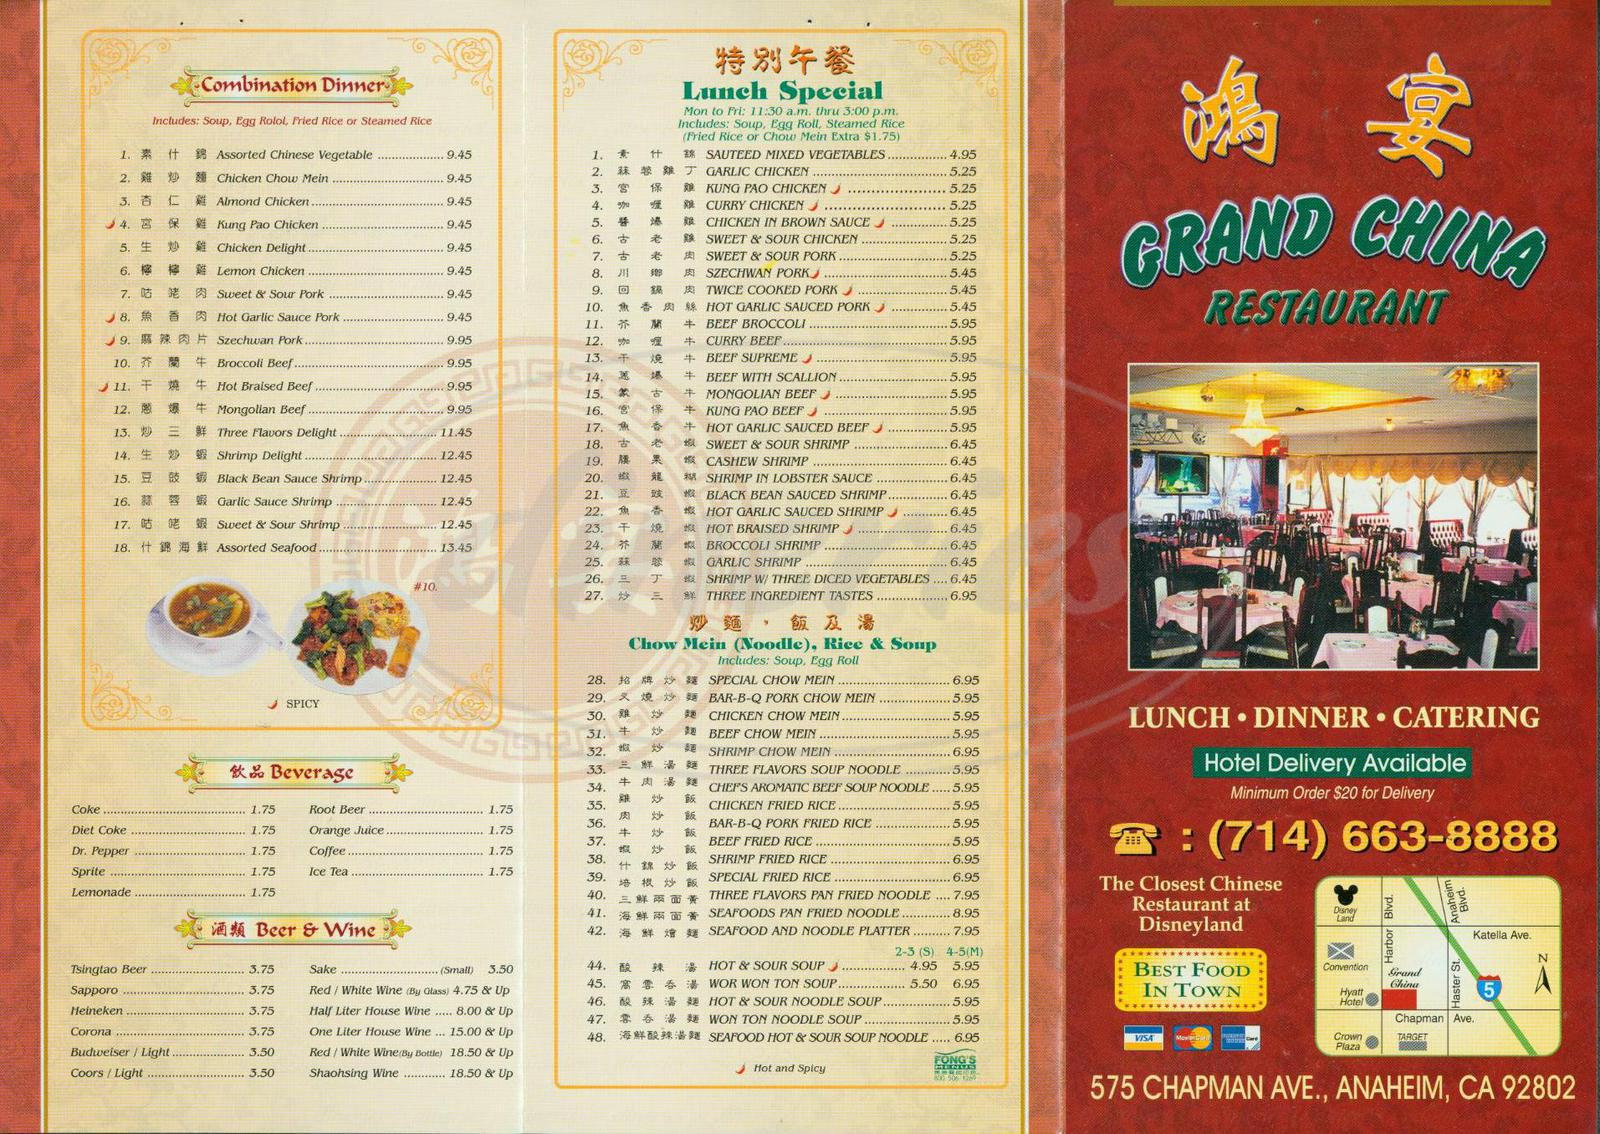 Big menu for Grand China Anaheim, Anaheim